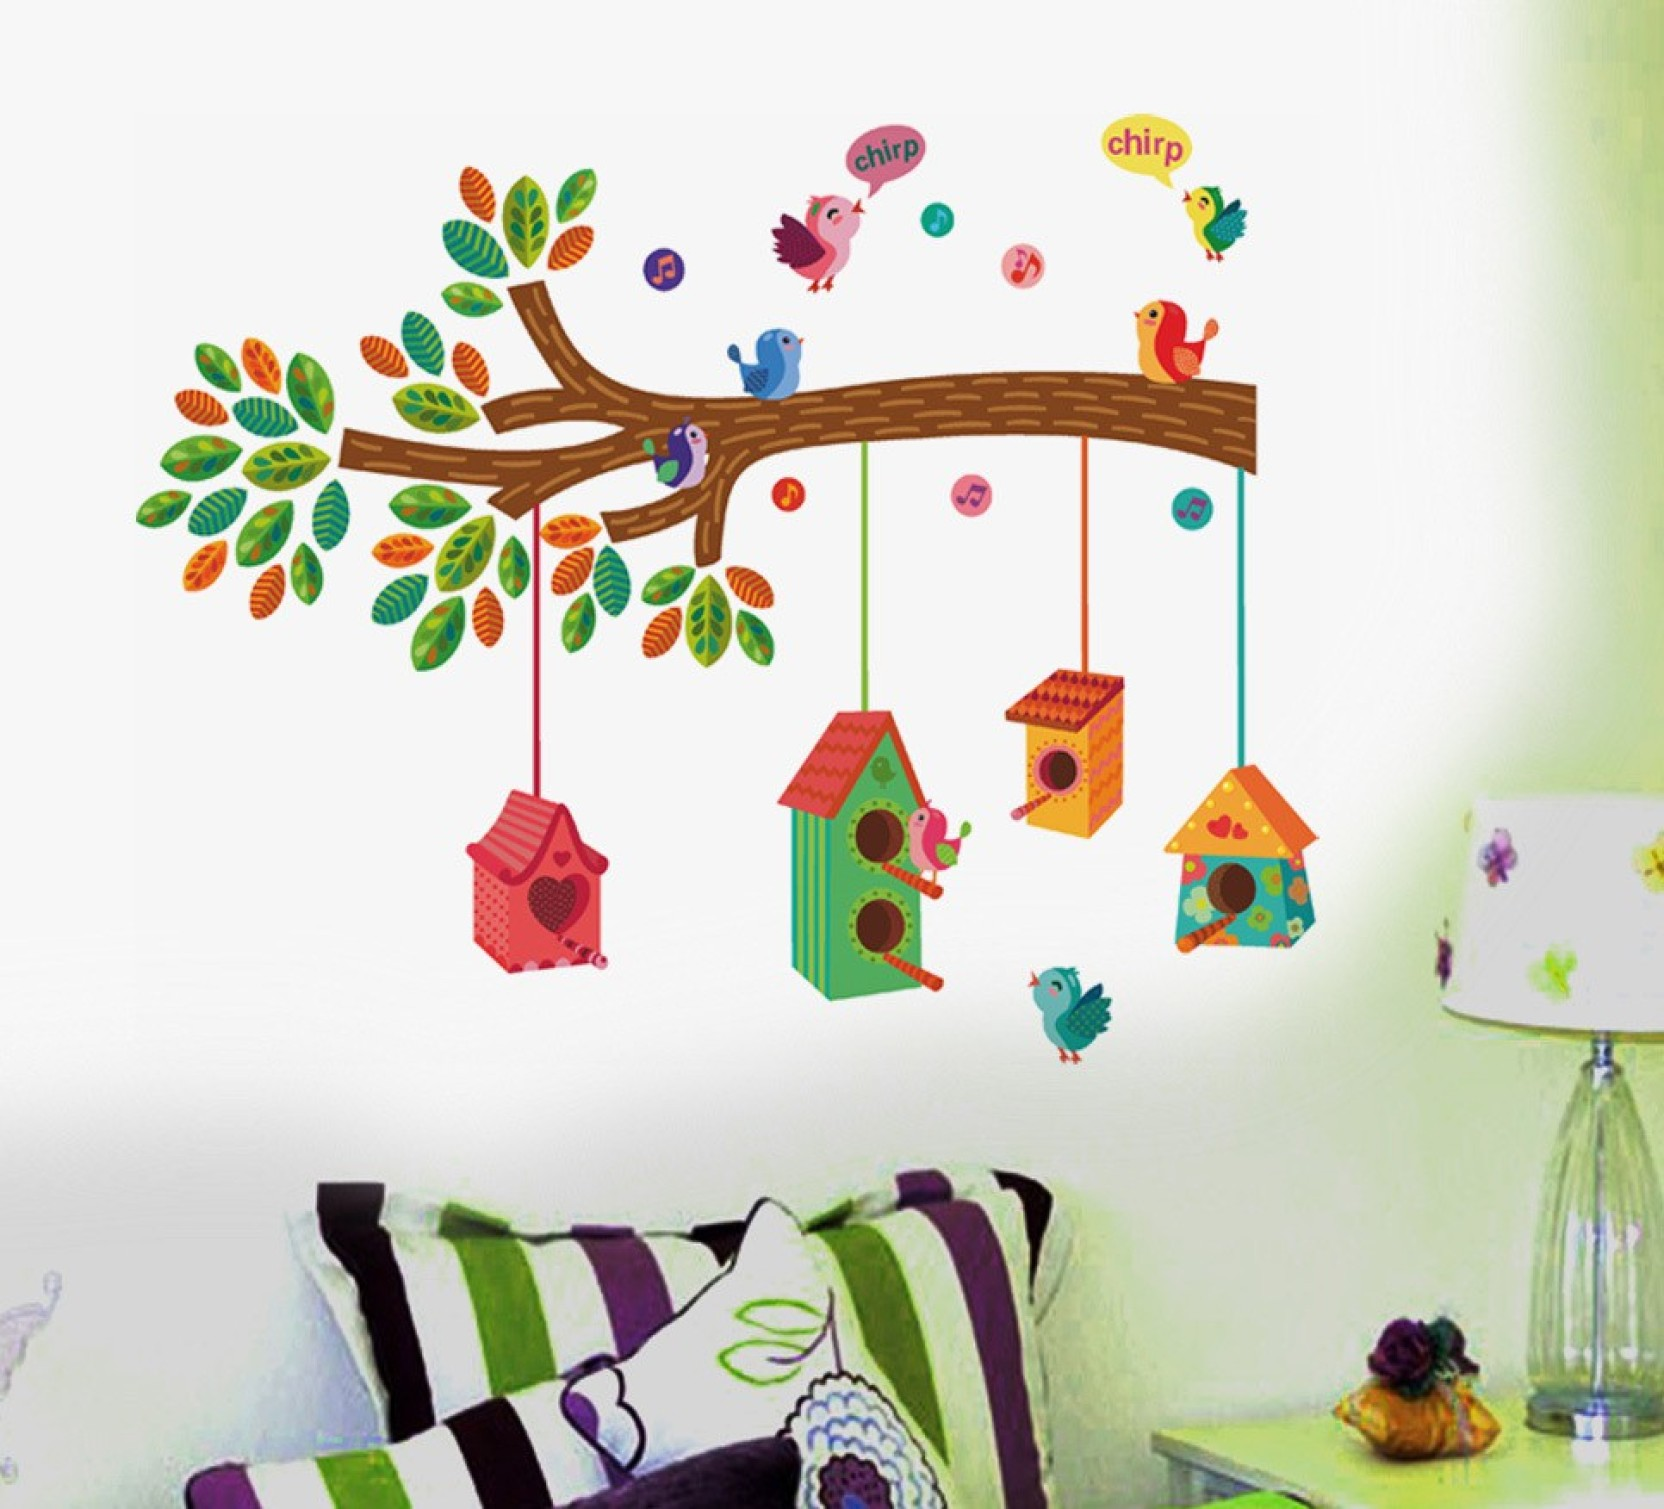 Happy Walls Extra Large Pvc Vinyl Sticker Price In India Buy Circuit Board Tree Wall Art Graphic Stickers Decals On Offer